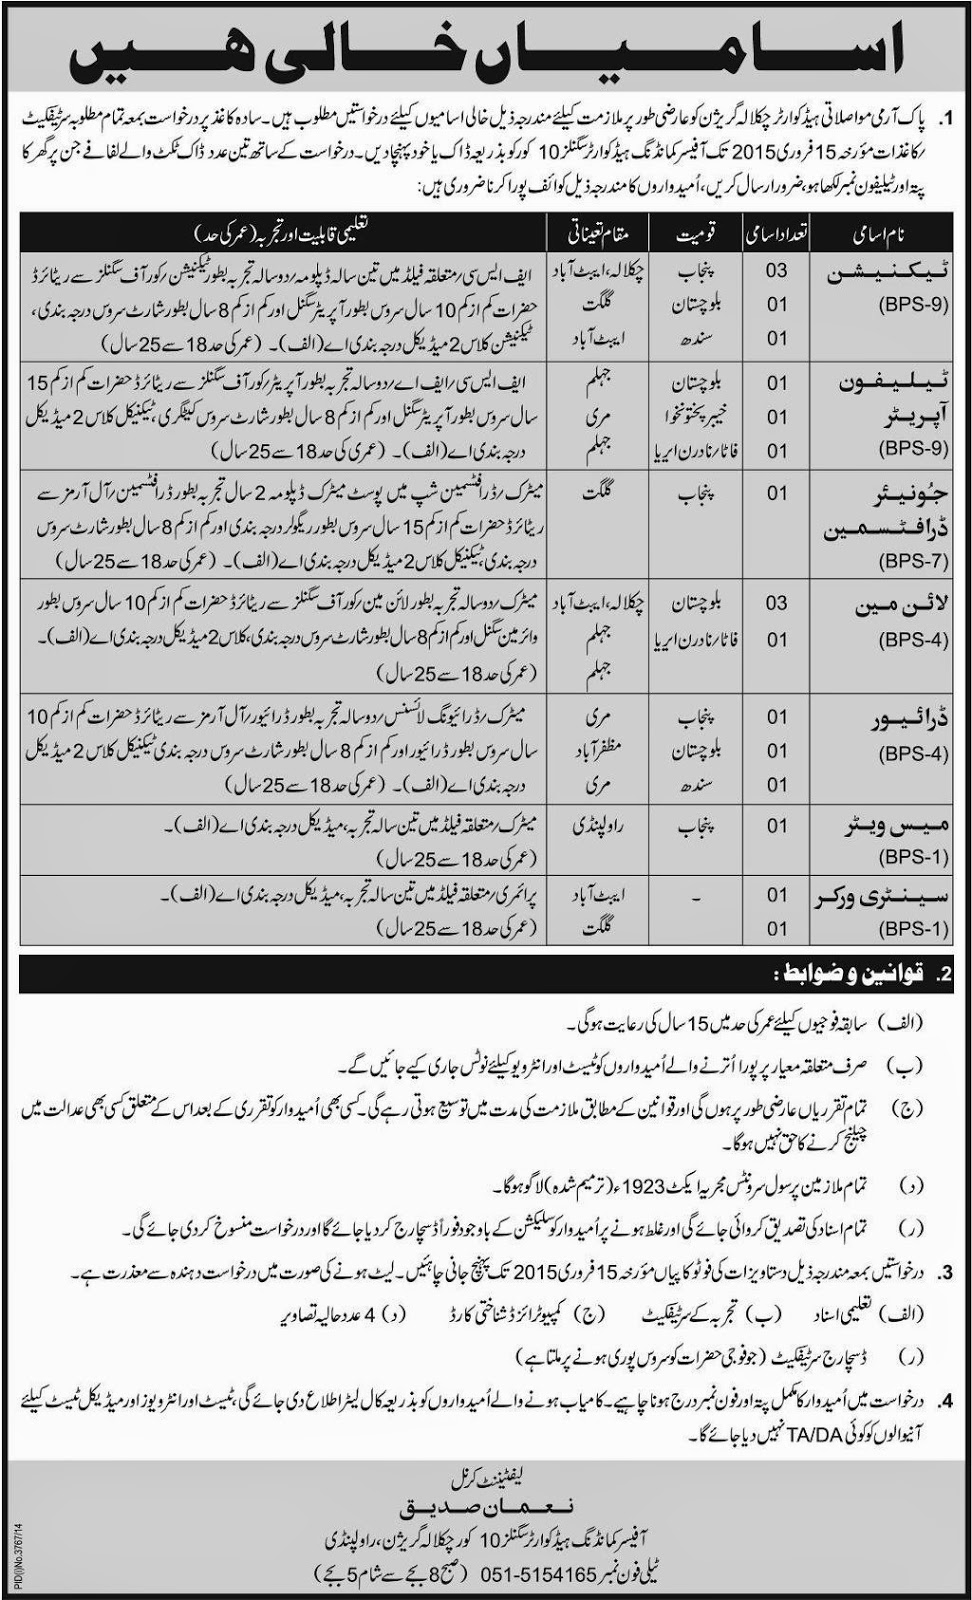 Pakistan Army Chaklala Headquarter Jobs in Rawalpindi